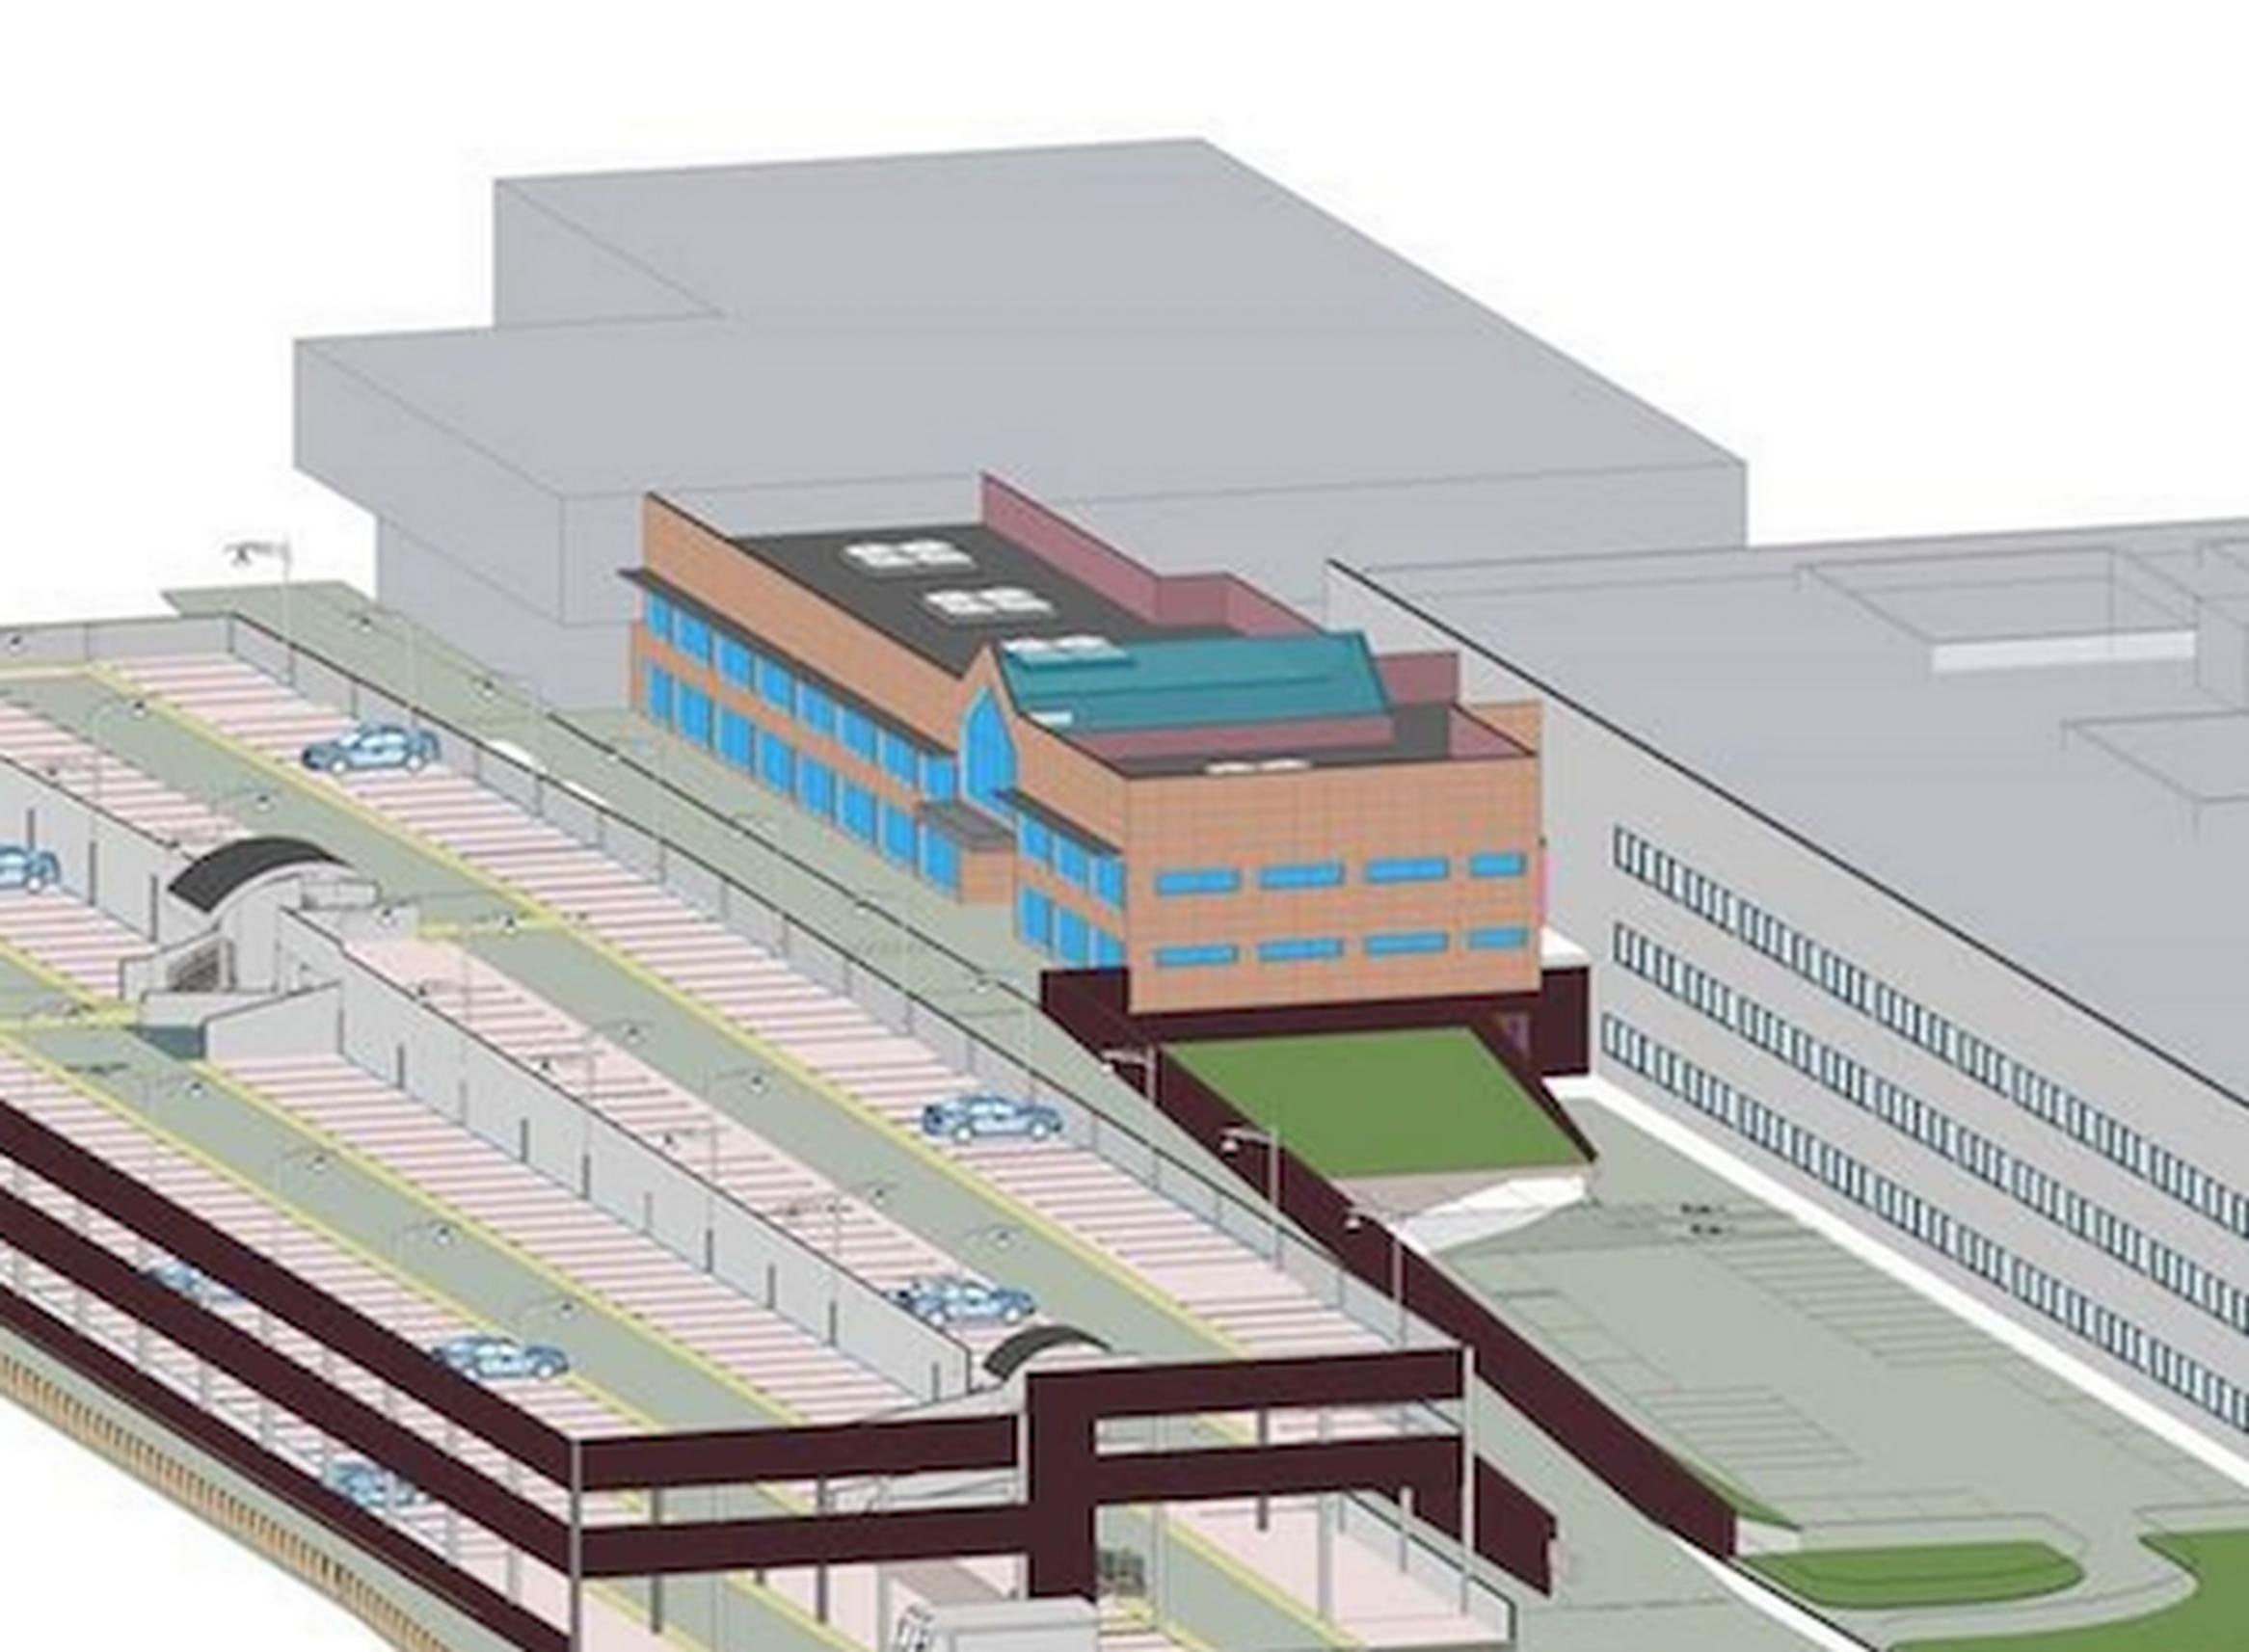 A 3D model of the St Peter`s Hospital car park